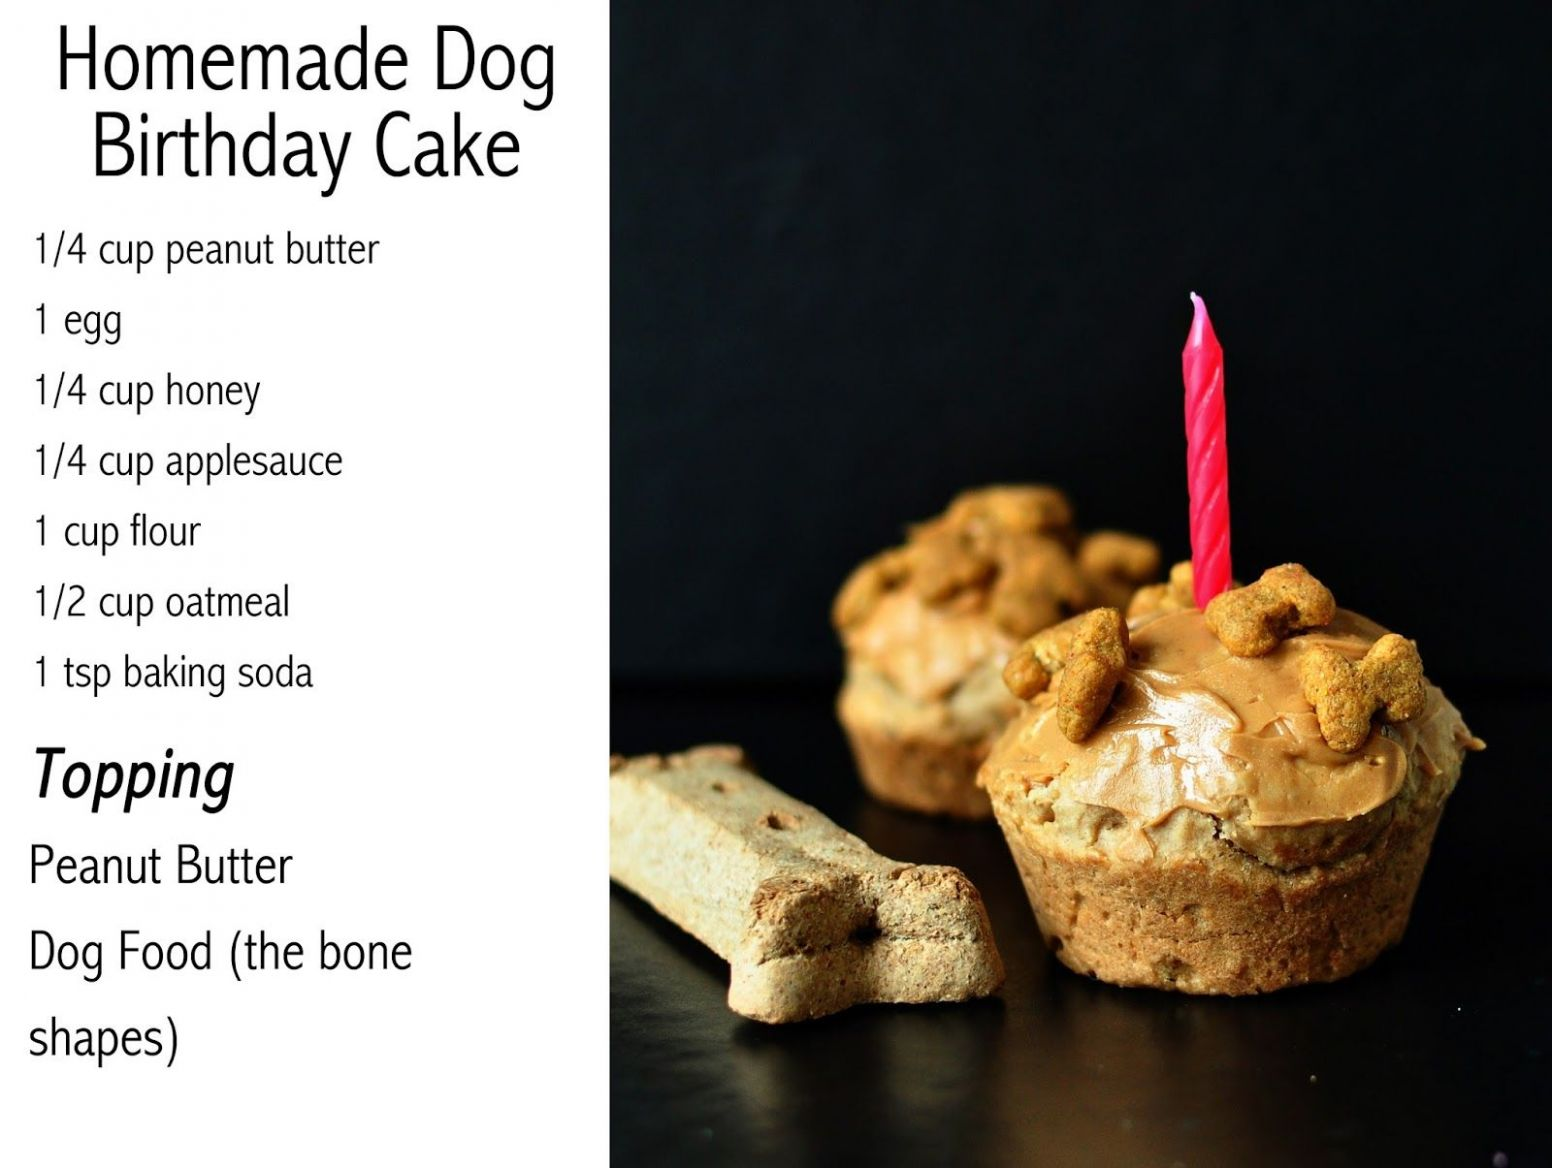 Dog homemade cupcakes or cake . Peanut butter, oatmeal, egg ..